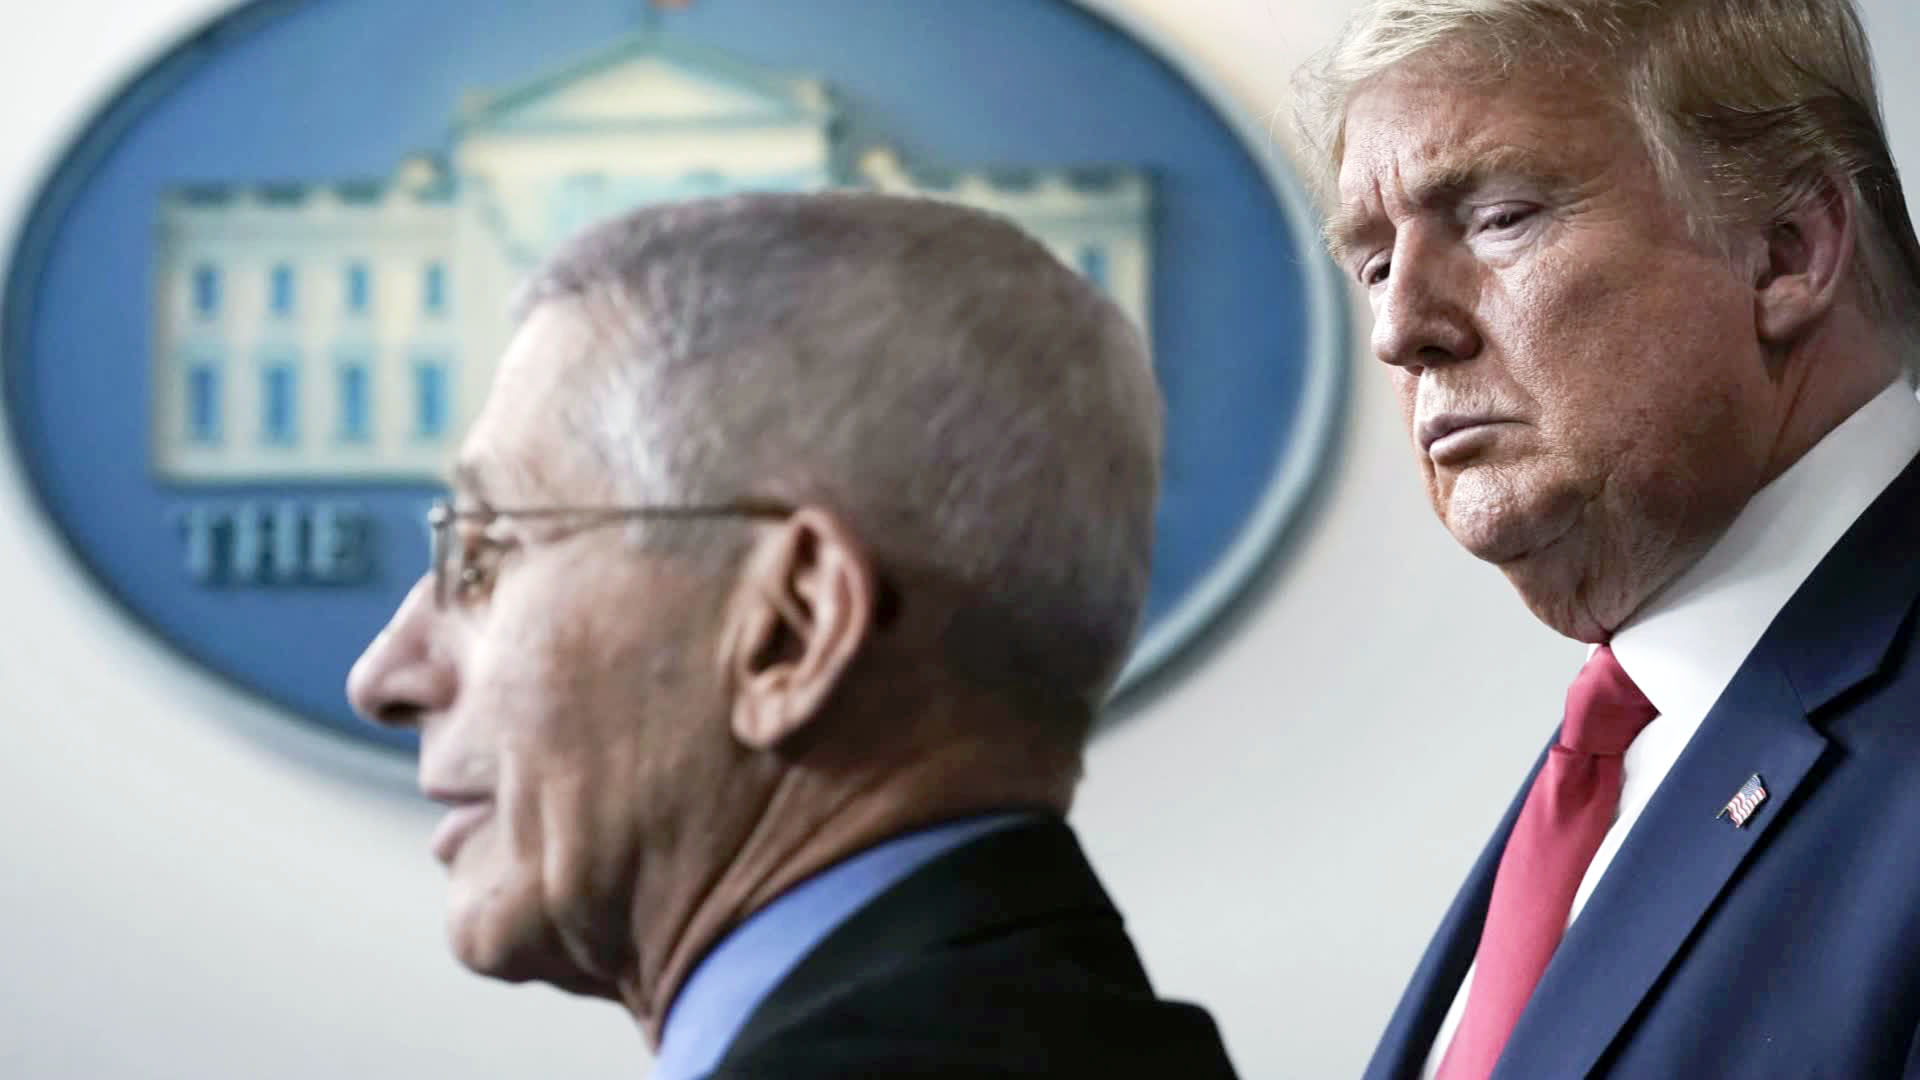 Fact-checking the White House statement against Fauci